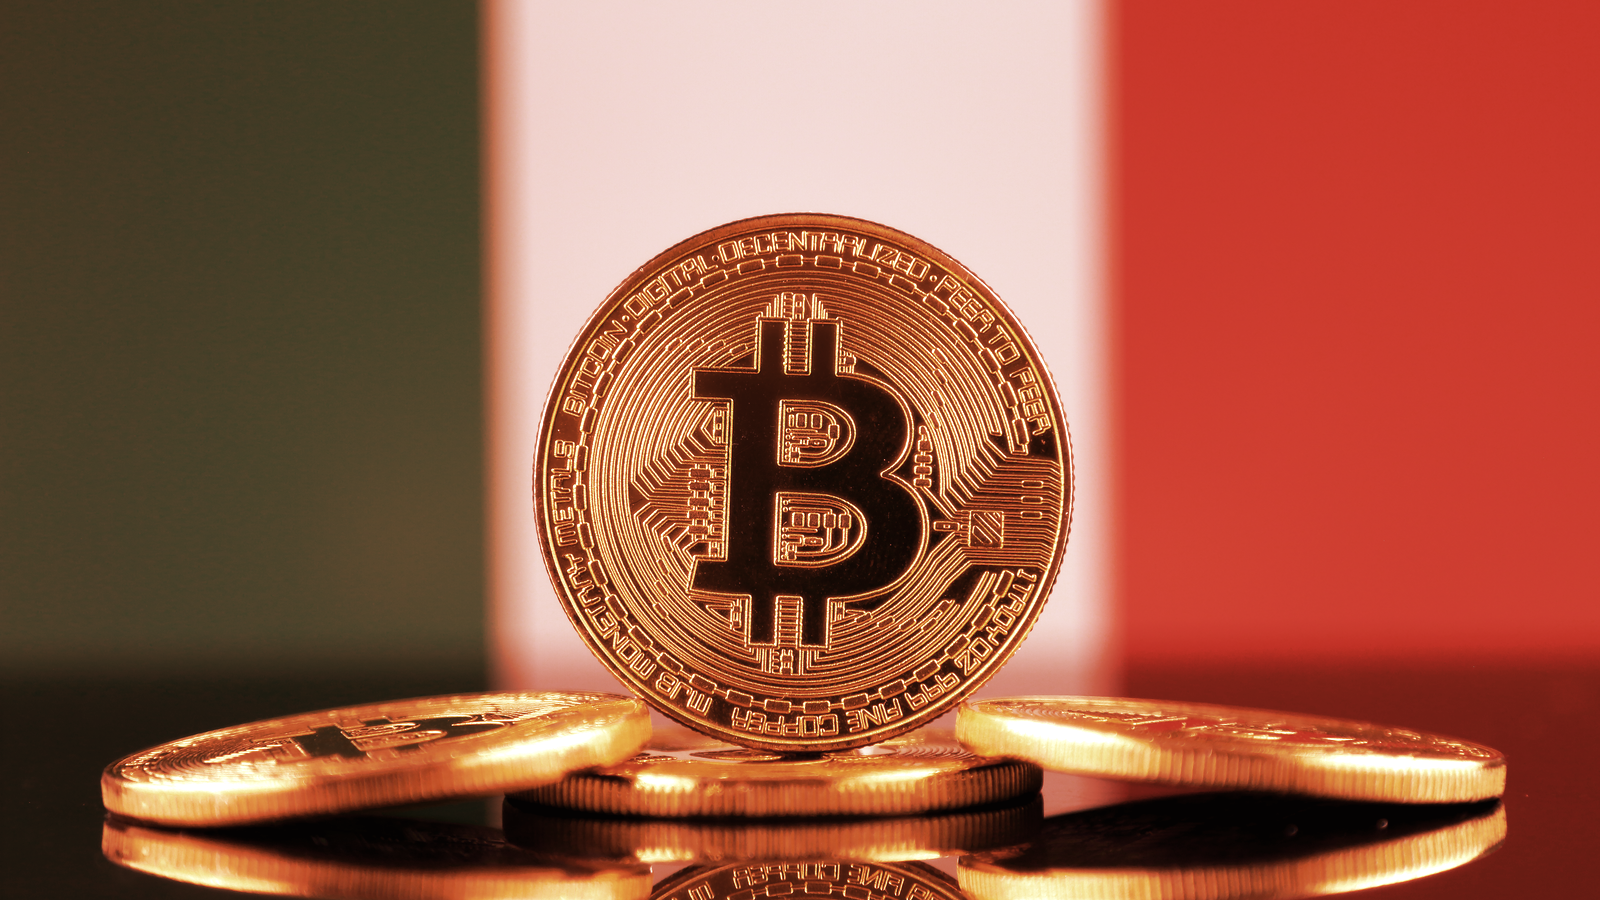 Italian Securities Regulator: Binance 'Not Authorized' To Provide Investment Services